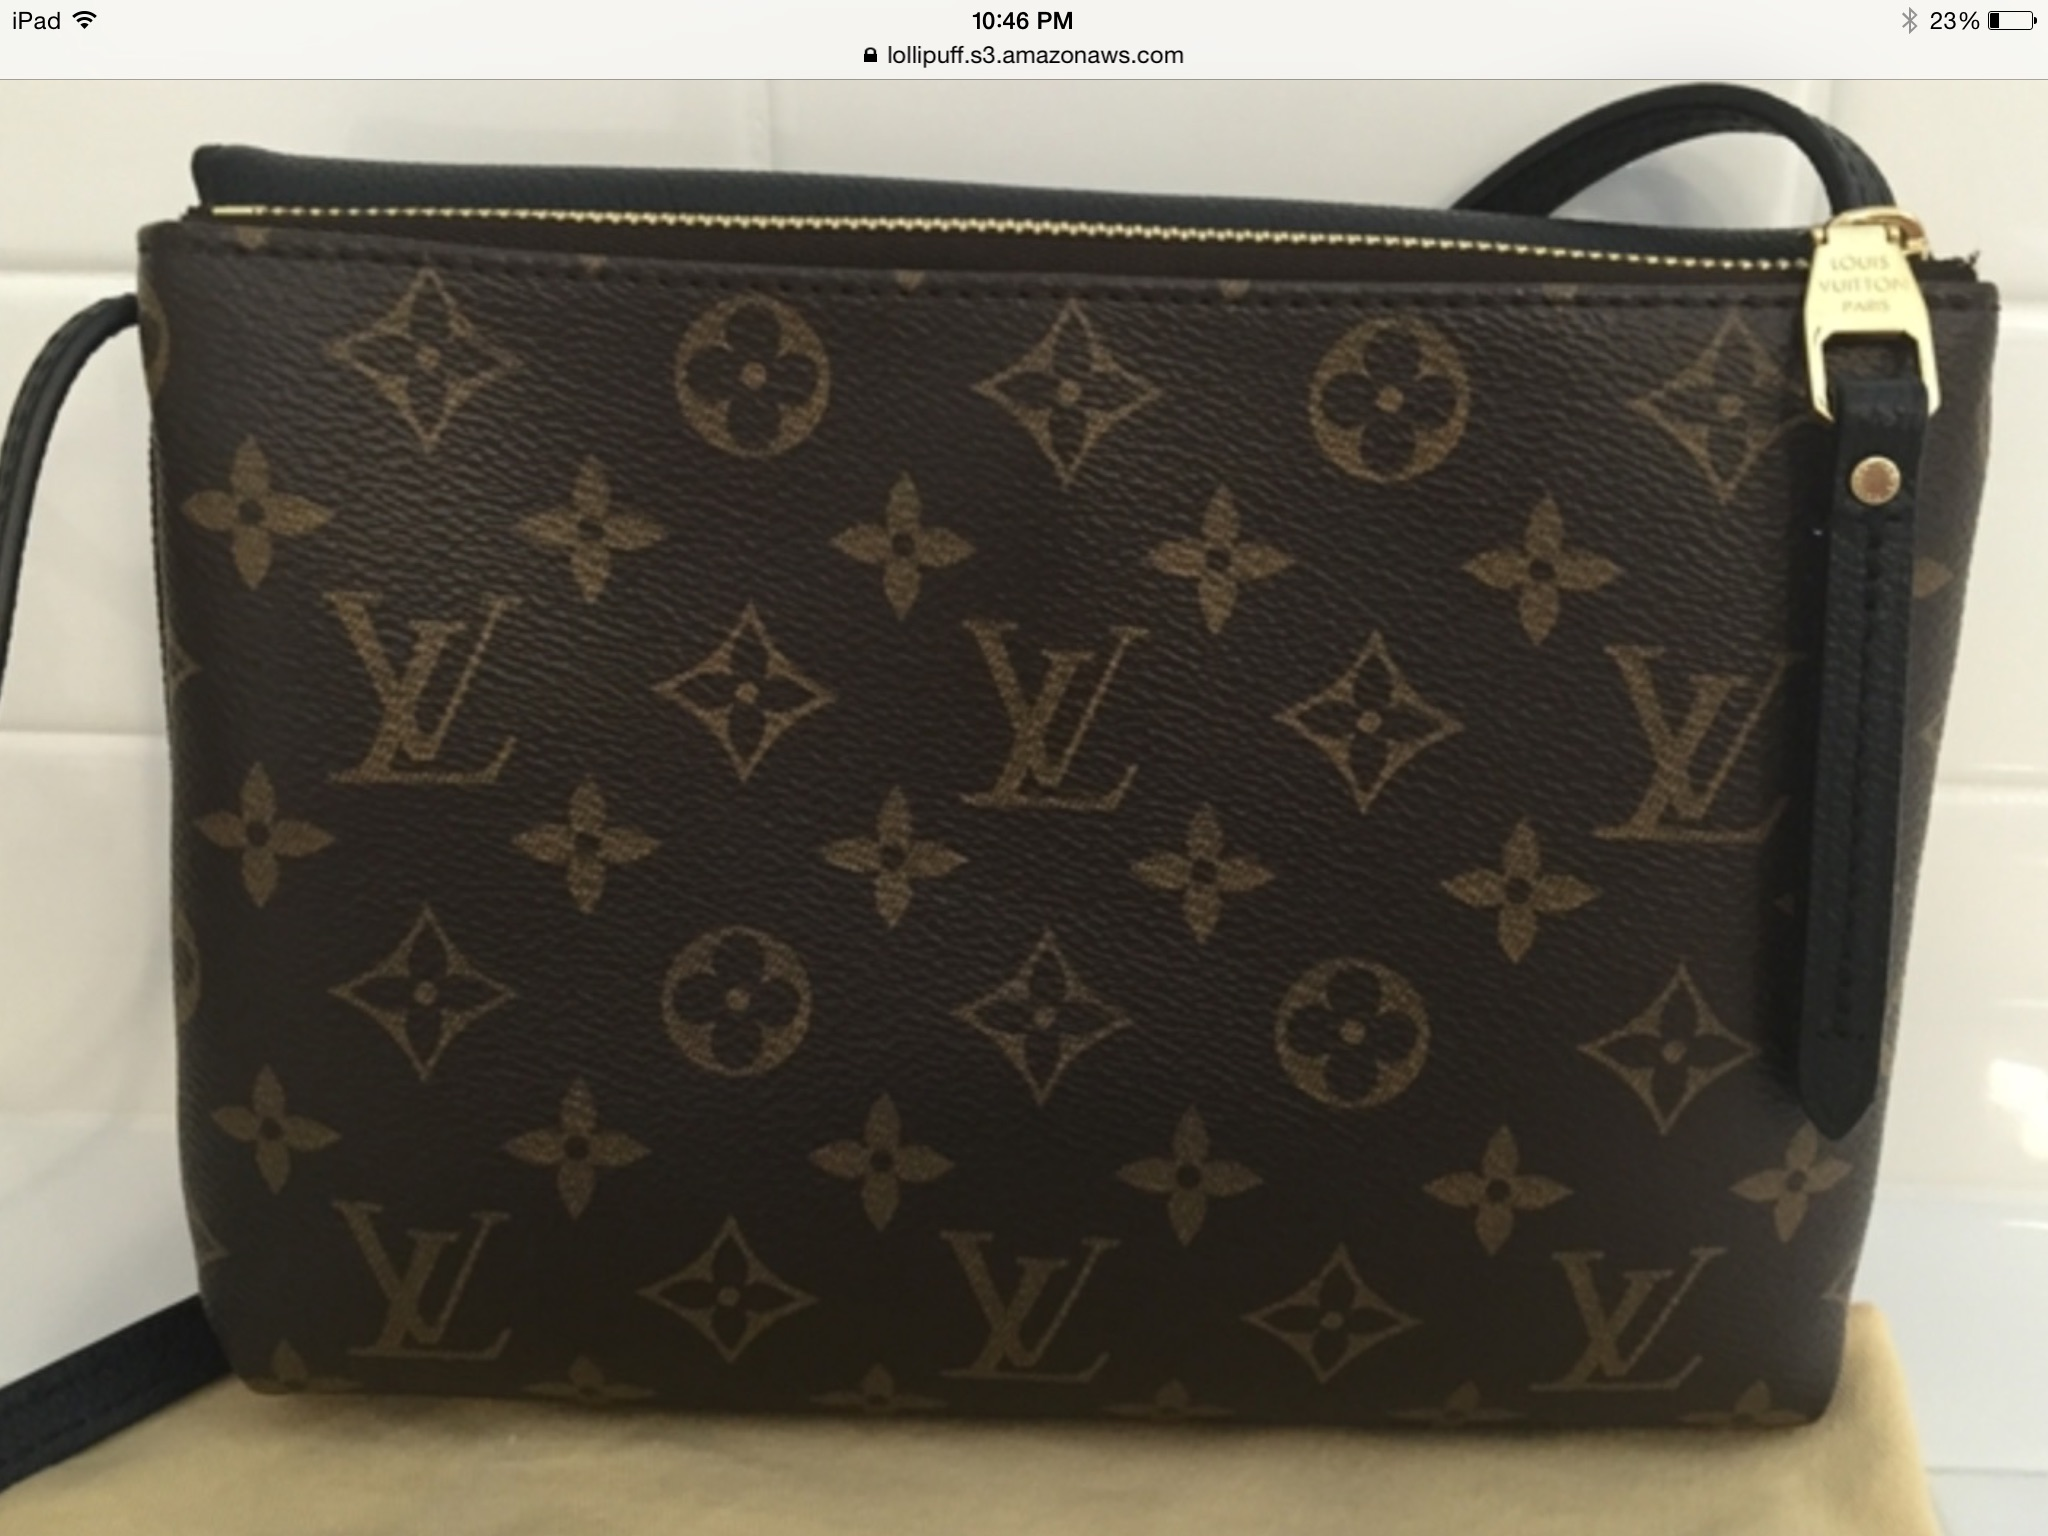 ... authenticity because the letters on the lv label look worn off. It  doesn t look like a heat stamp. Can you help me  It s made in the USA.  Thank you. 980c42b26e7a7